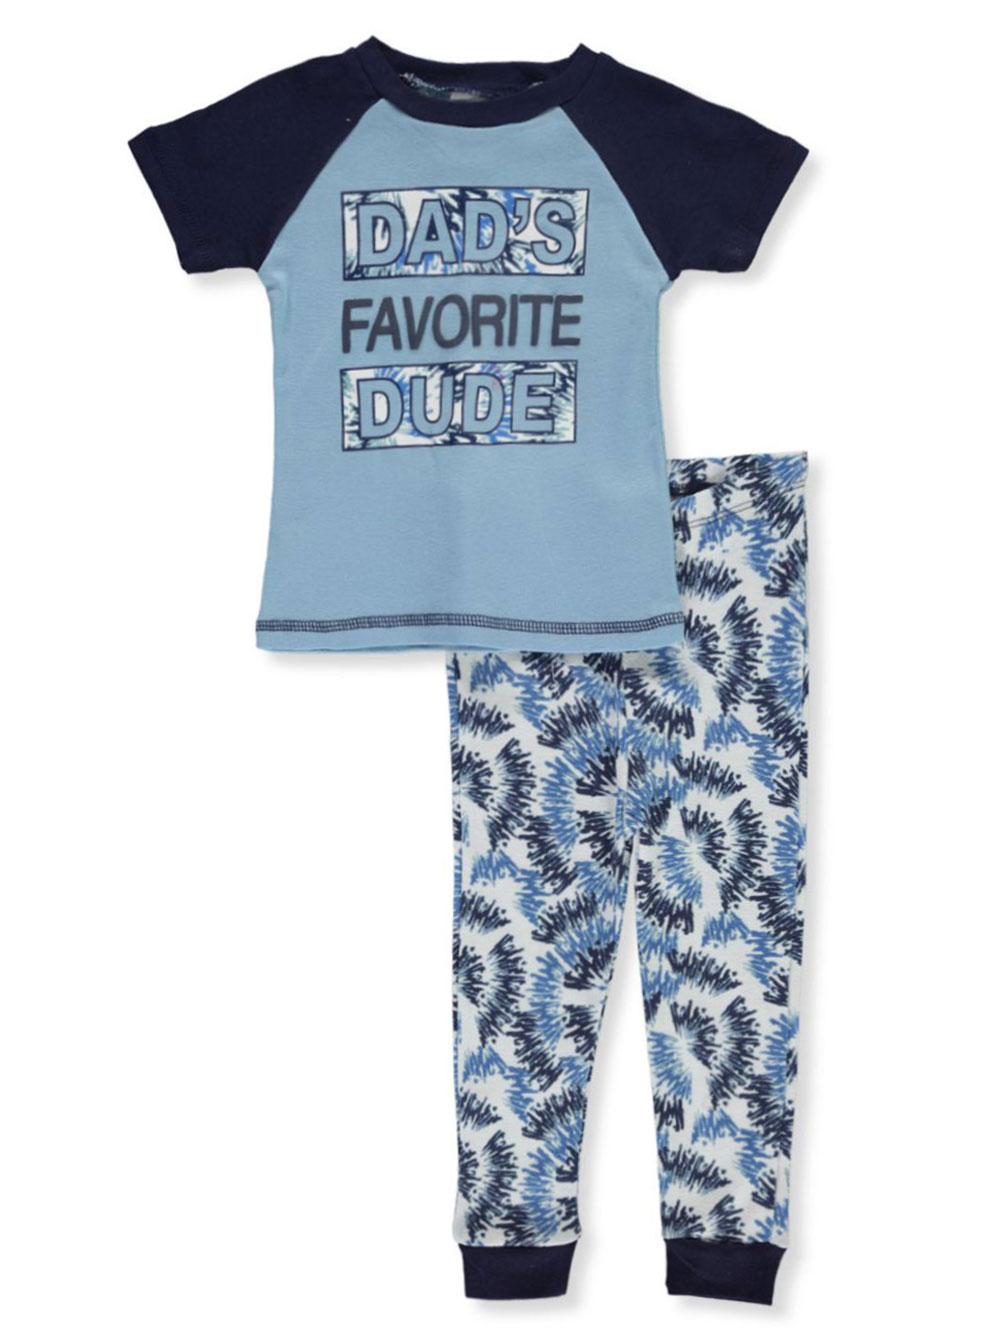 Boys Gray and Navy Pant Sets